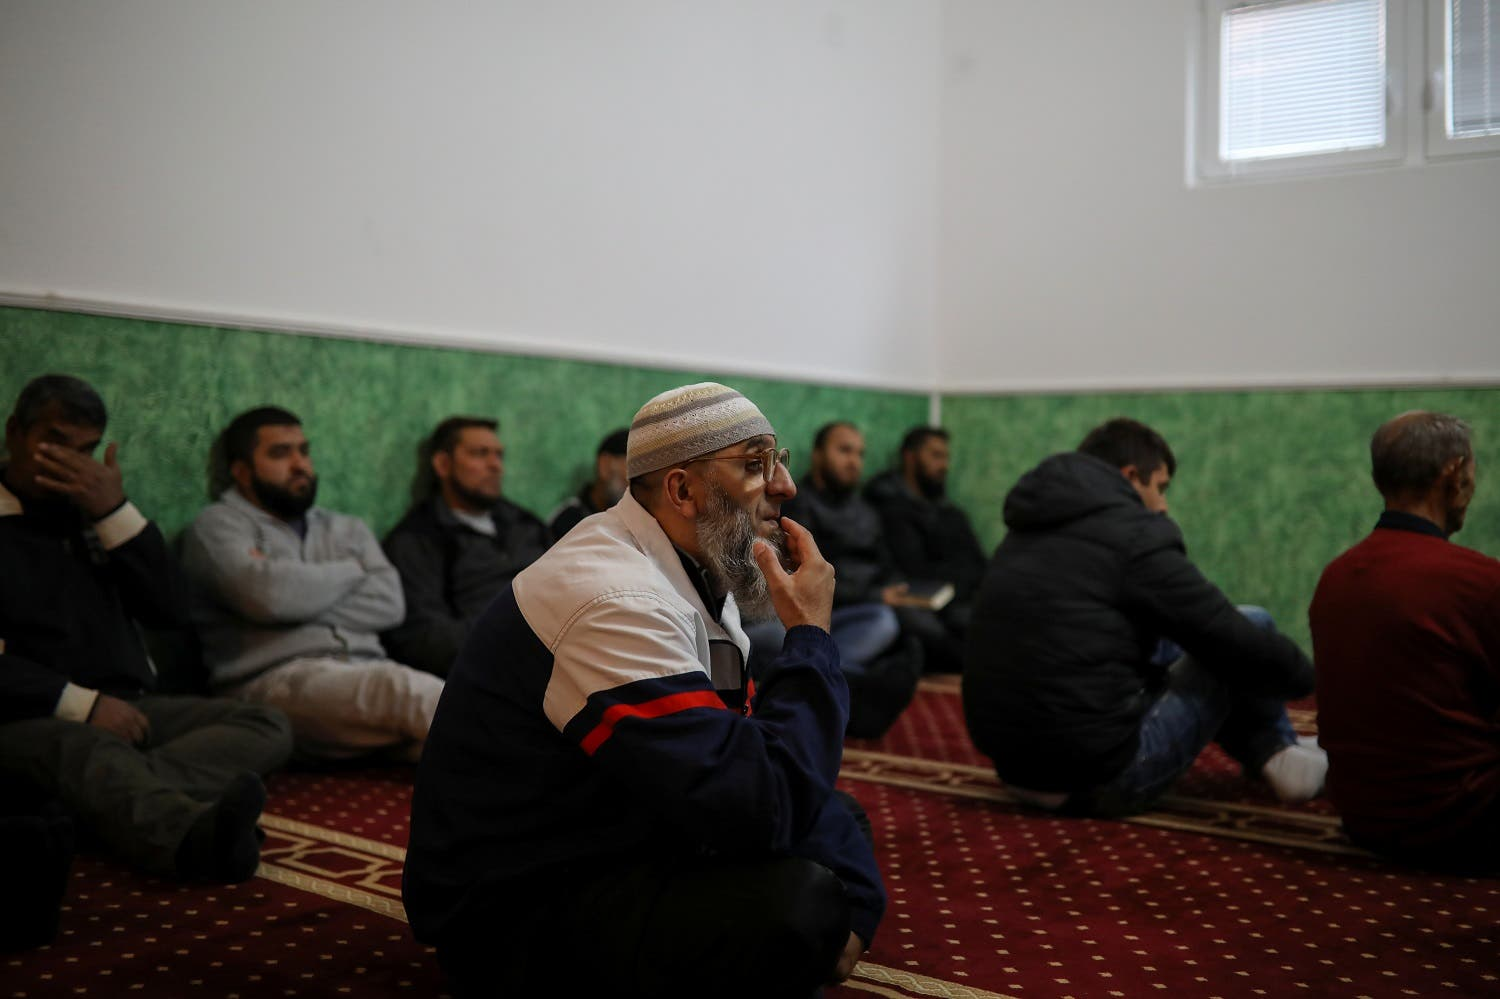 With just one mosque, Belgrade's Muslims improvise